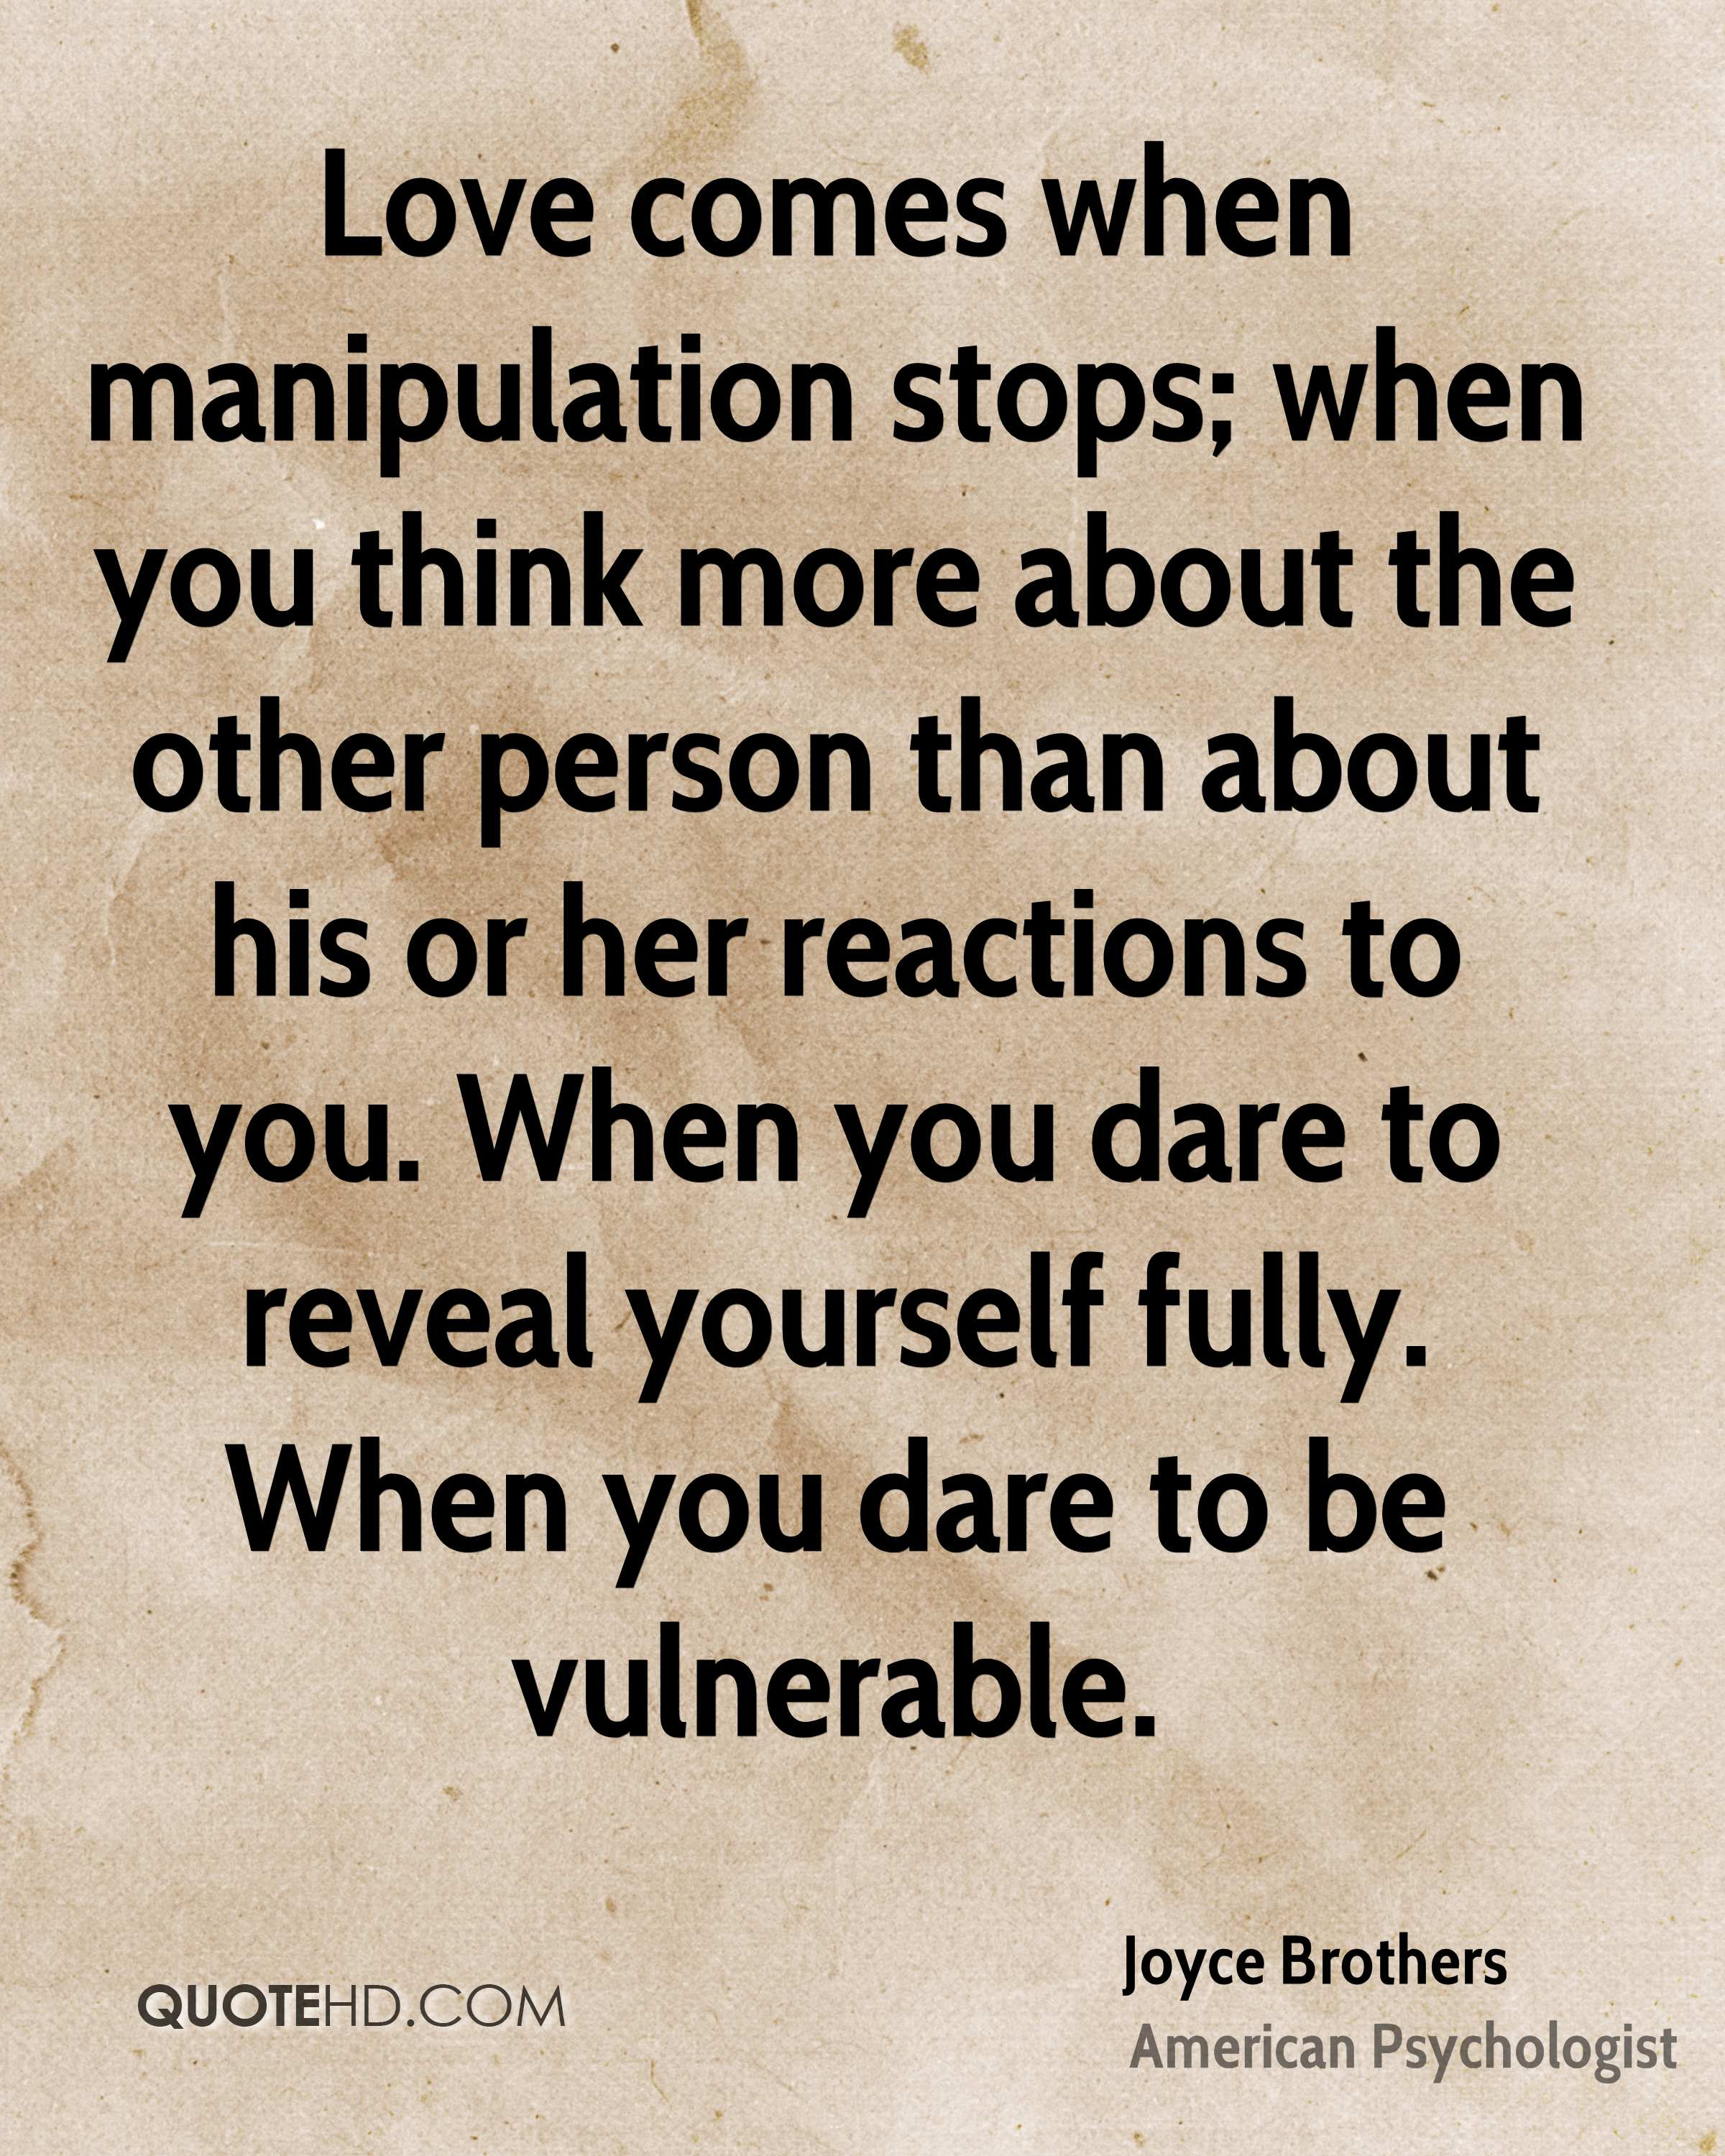 Love comes when manipulation stops; when you think more about the other person than about his or her reactions to you. When you dare to reveal yourself fully. When you dare to be vulnerable.